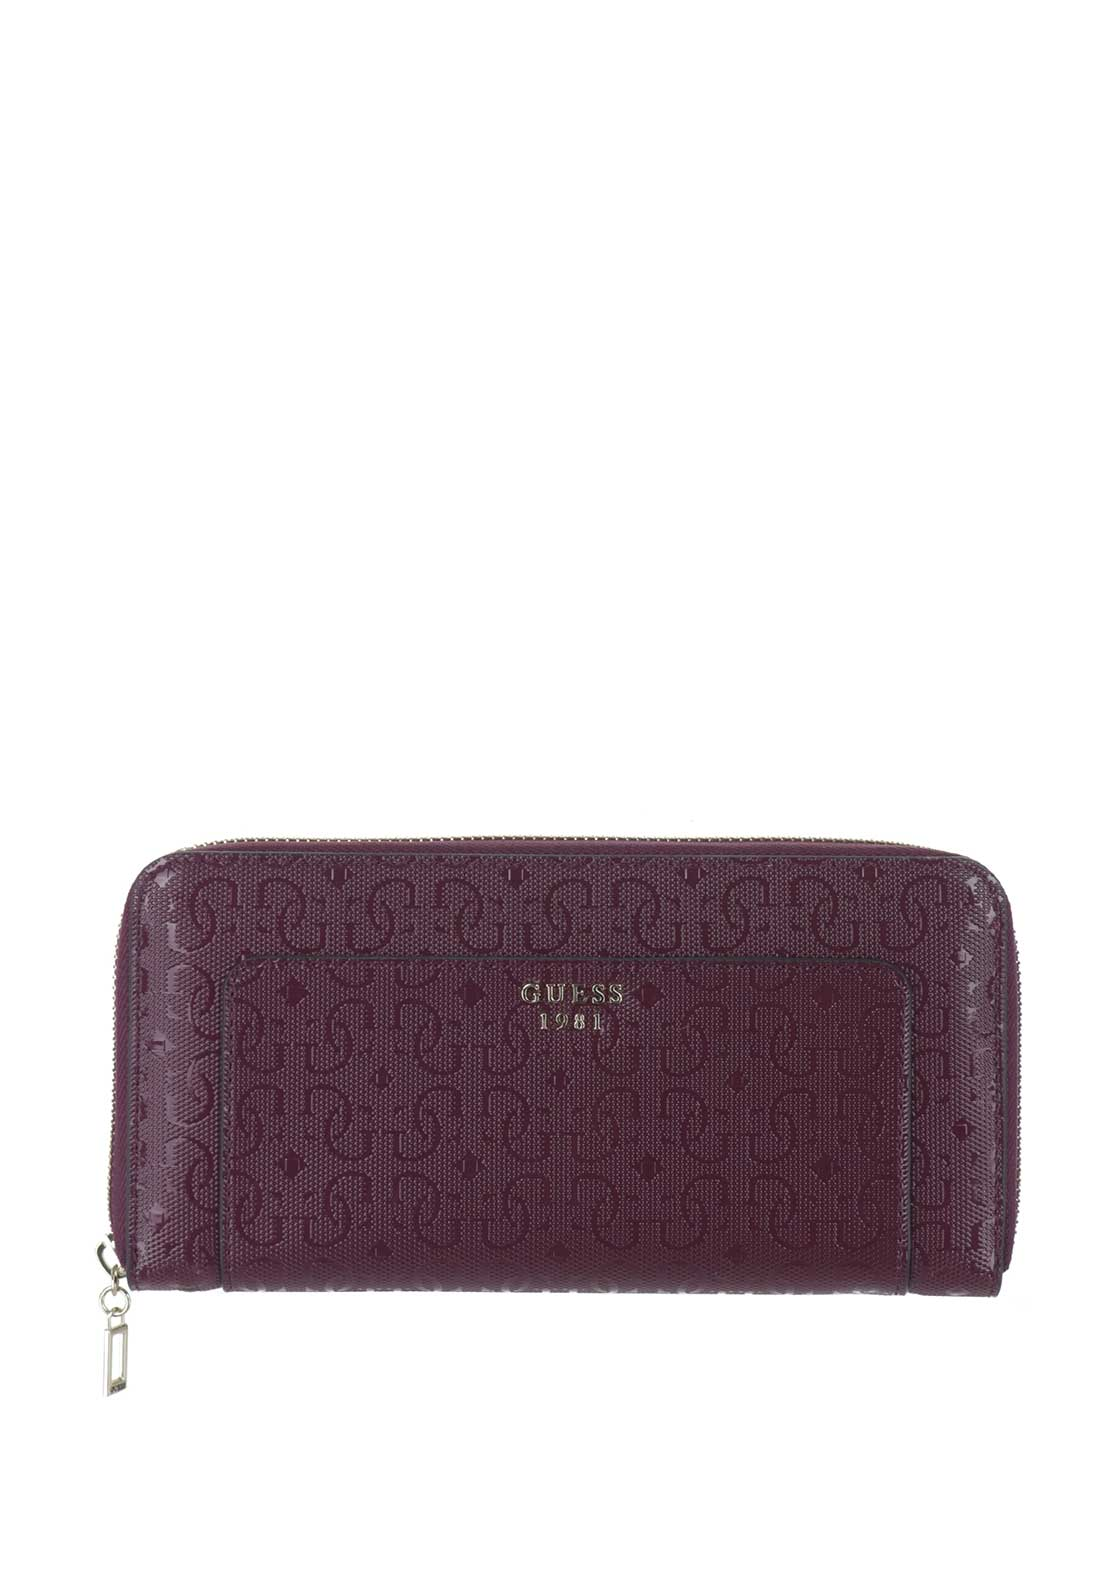 Guess Marian SLG Zip Around Purse, Bordeaux